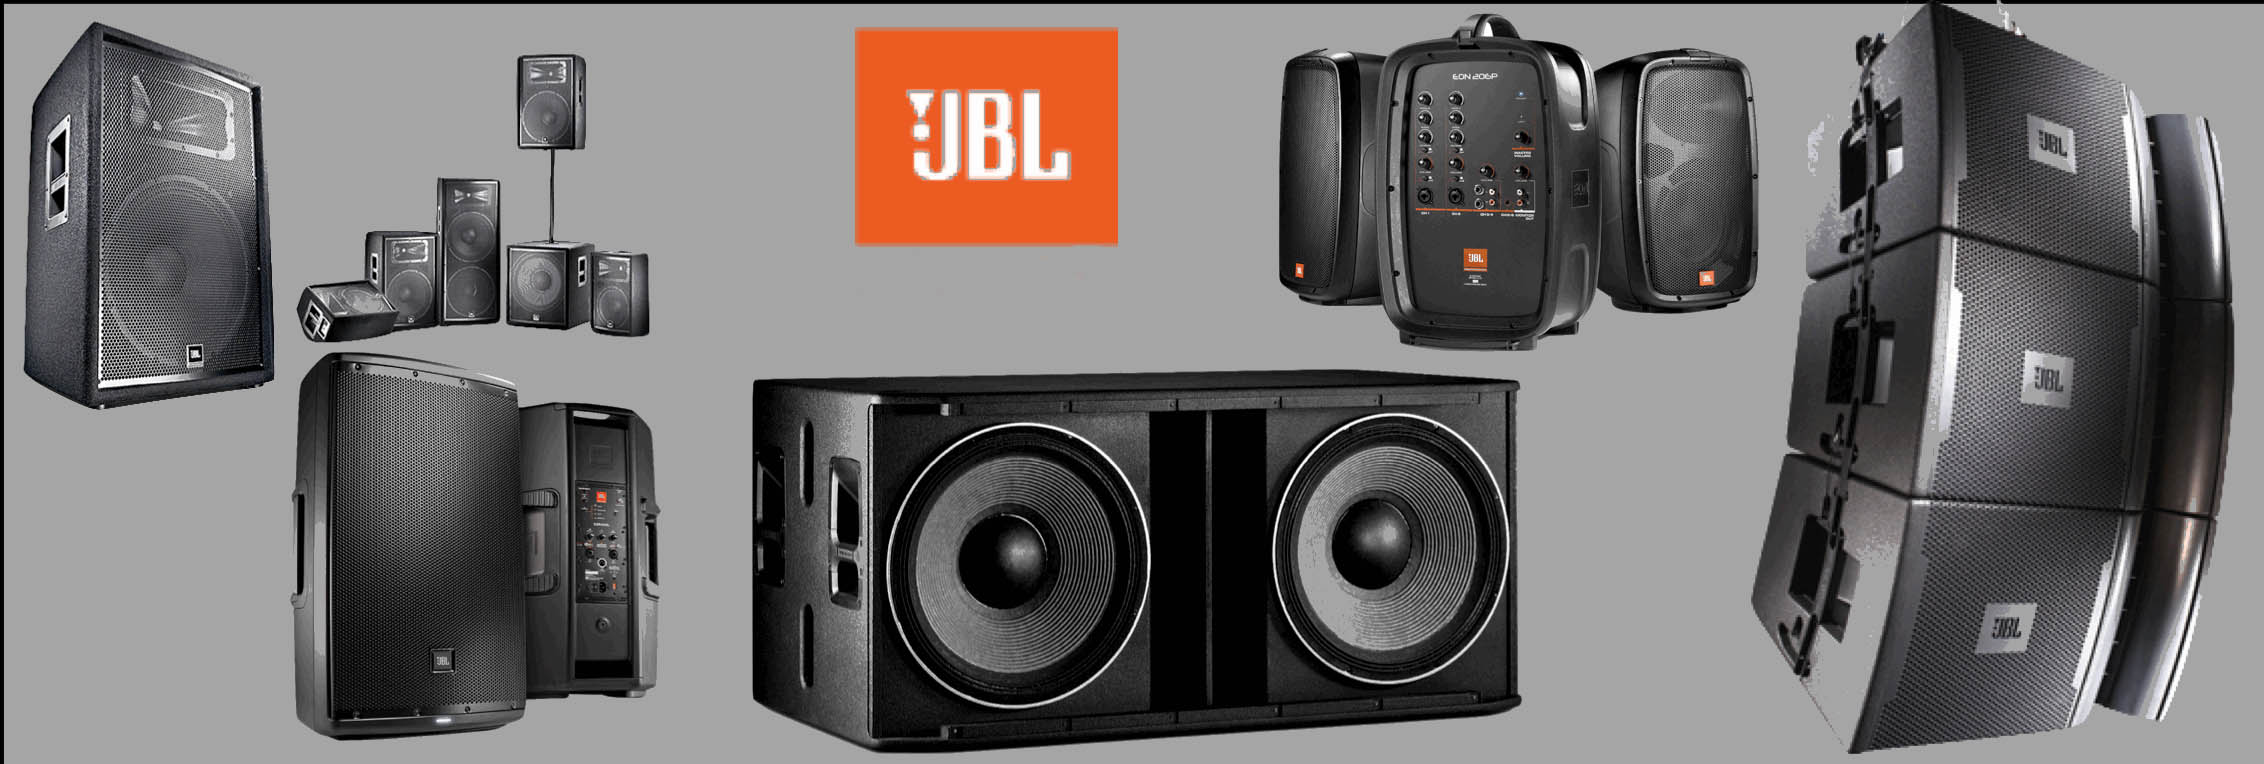 Jbl Portable Speakers In Pakistan Speaker Bluetooth Flip Iii Pink 1946 An American Audio Electronics Company Named Was Founded By James Bullough Lansing 1969 Sidney Harman Acquired This Brand